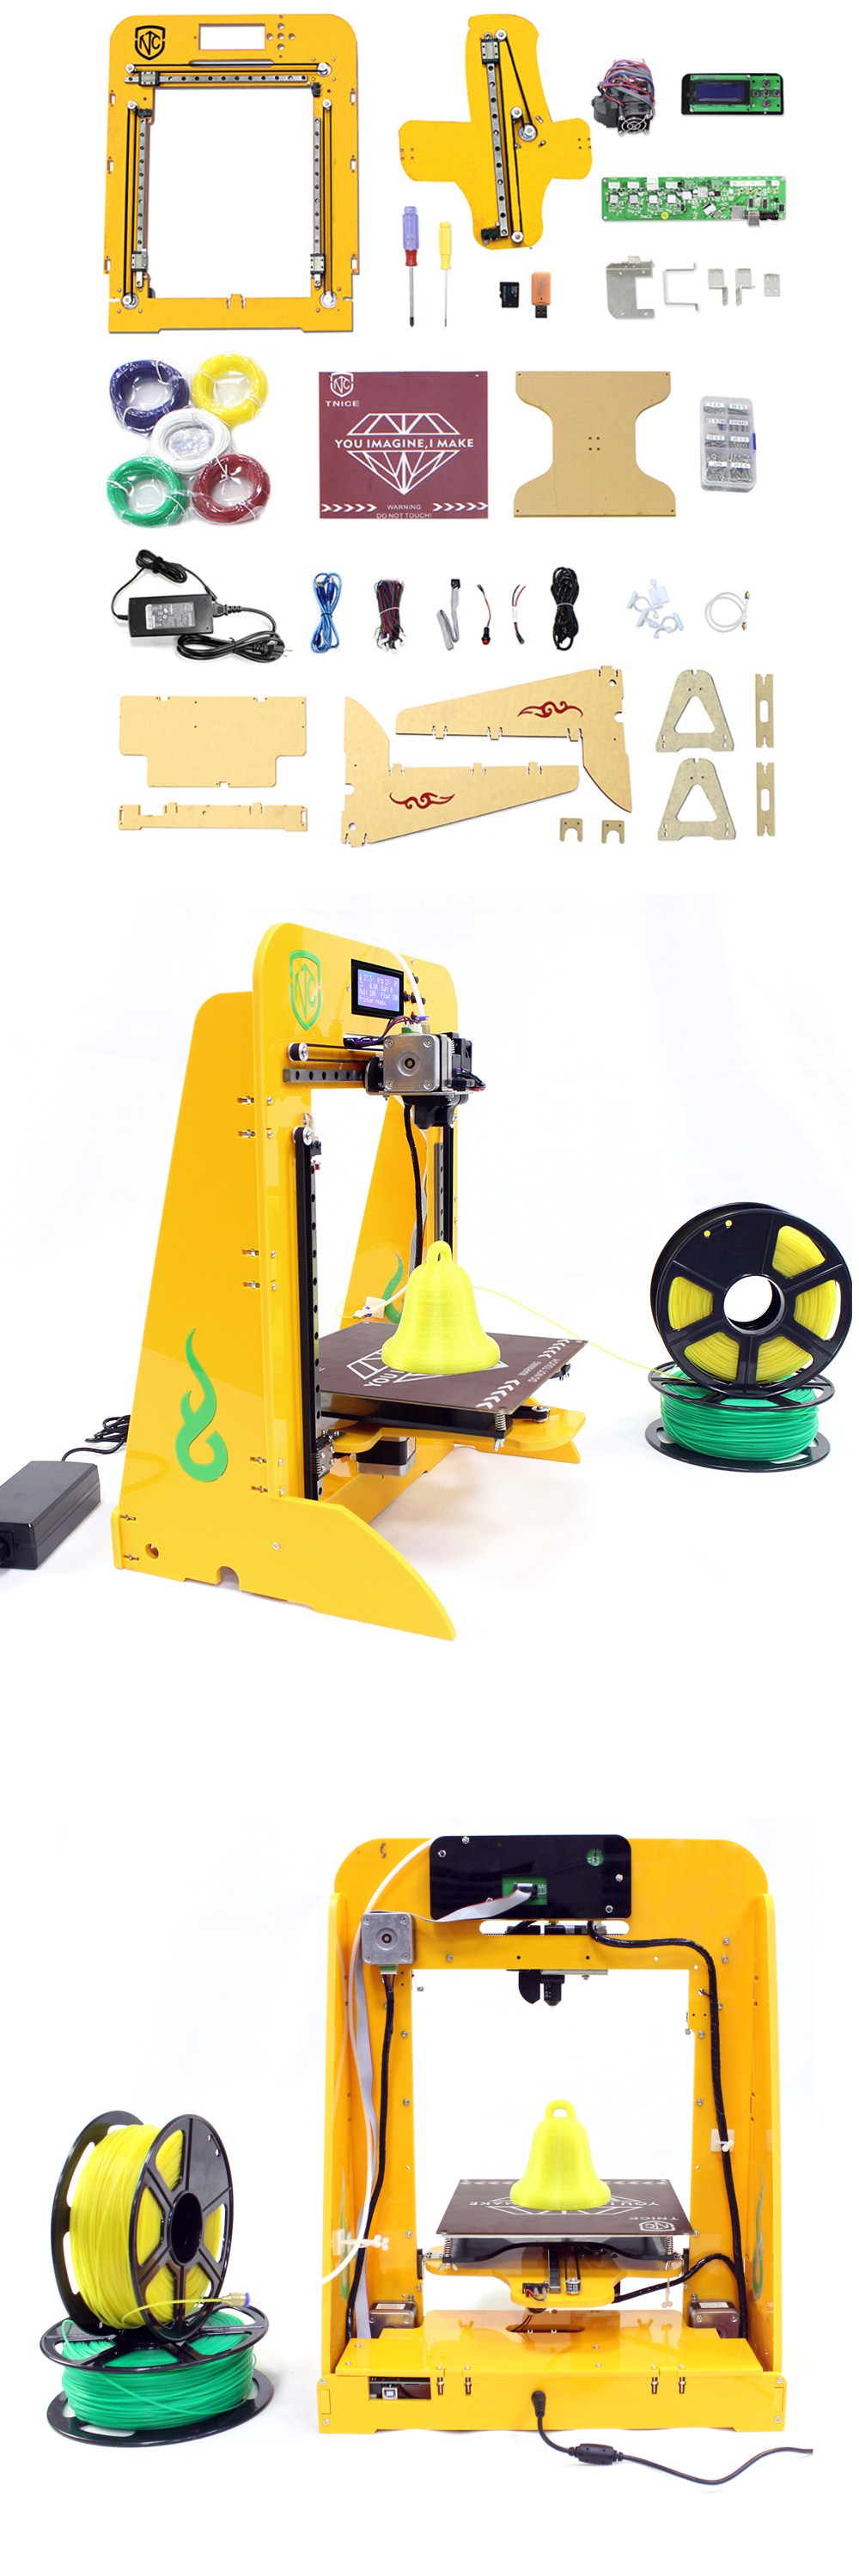 TNICE T-23 Single Extruder High Accuracy DIY 3D Printer Kit Come with Filament 1.75mm 0.4mm Nozzle